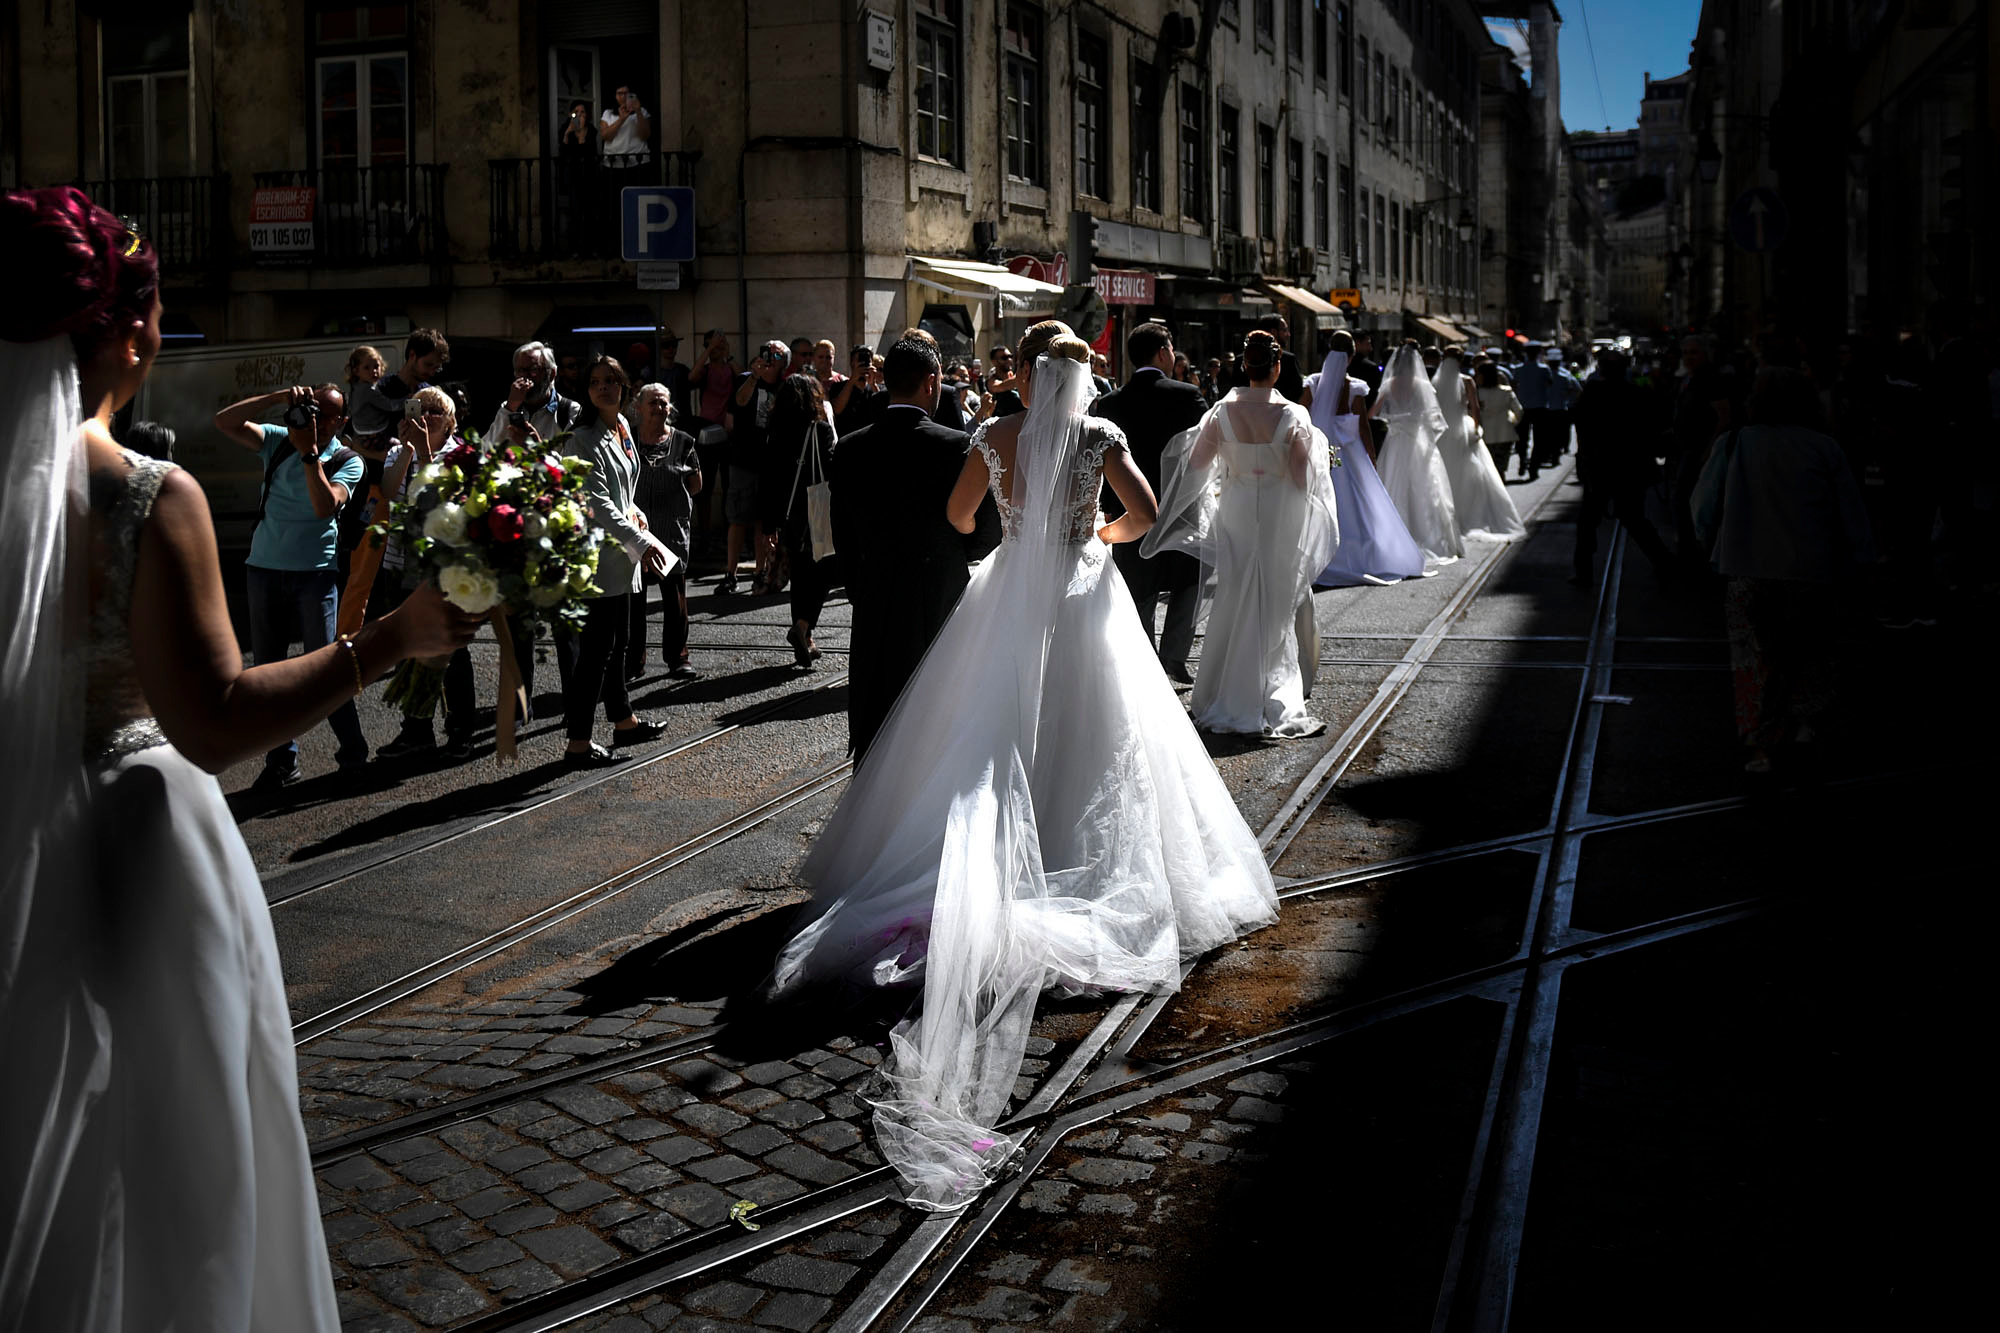 Noces collectives à Lisbonne, le 12 juin 2019, AFP